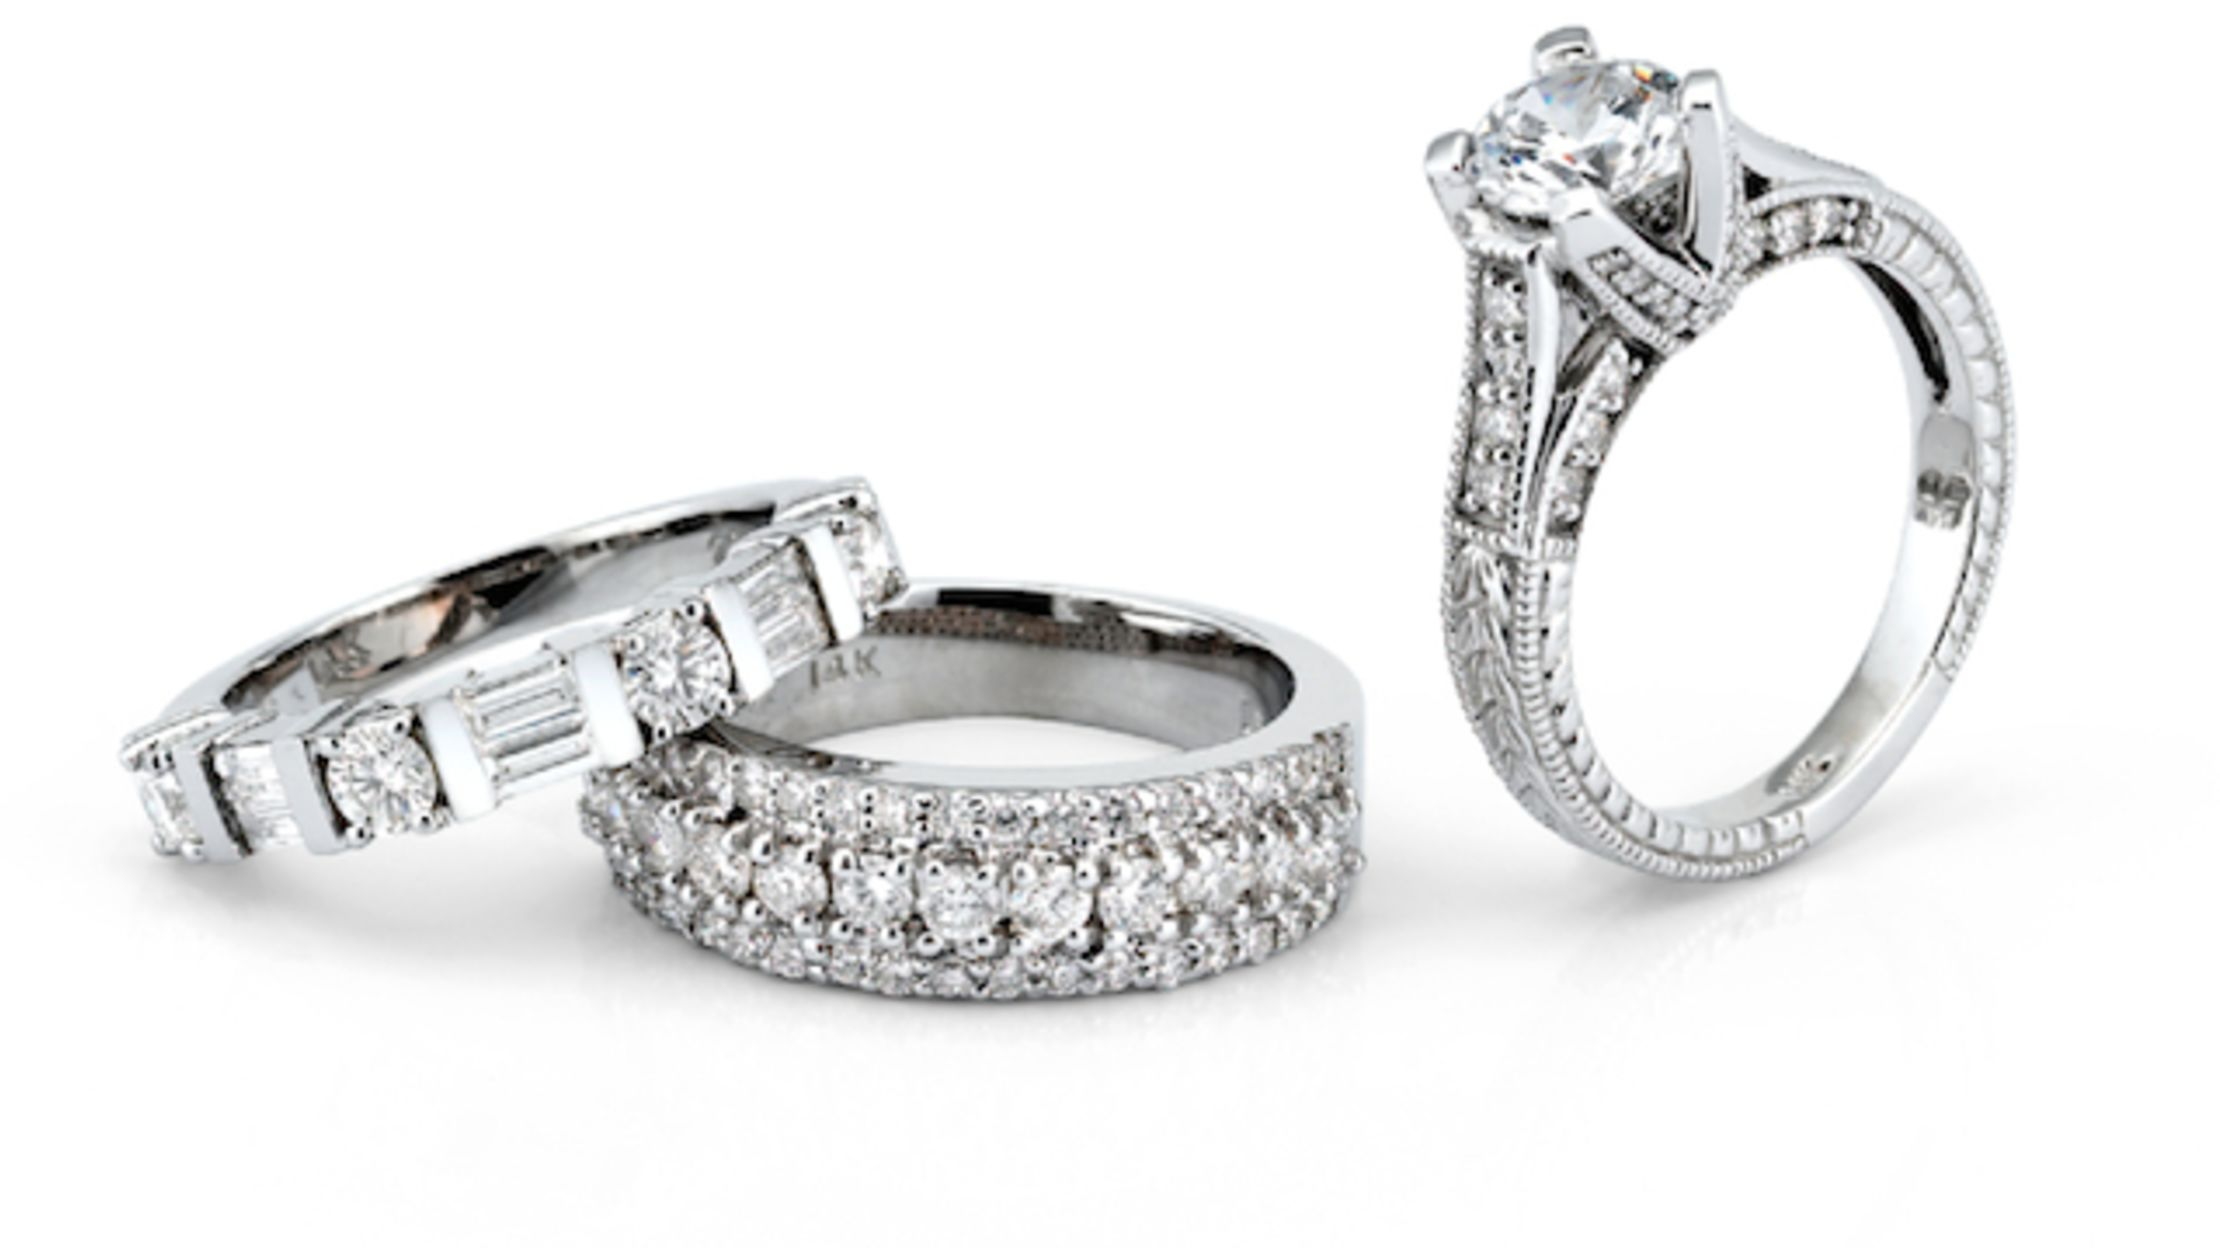 11 Things You Need To Know Before Buying An Engagement Ring Mental Floss